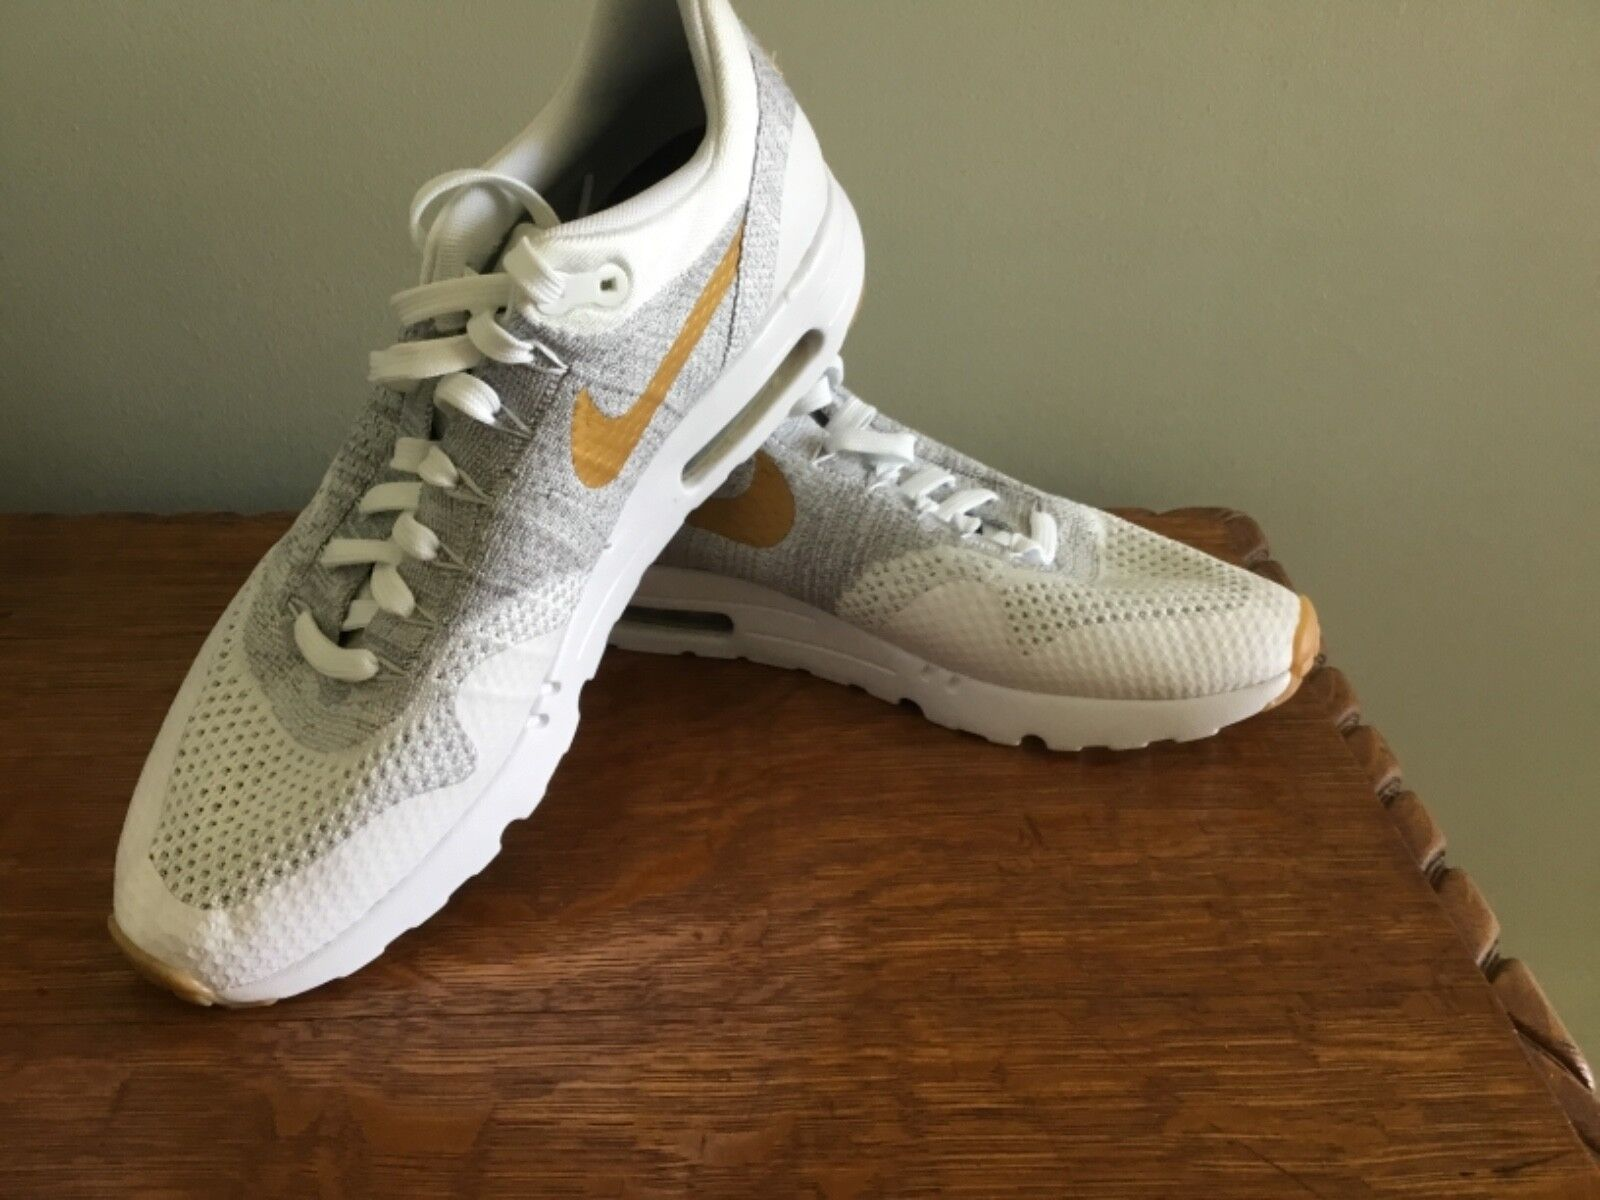 Nike Air Max Weiß Gold Athletic Men's schuhe 11 New NIKEID